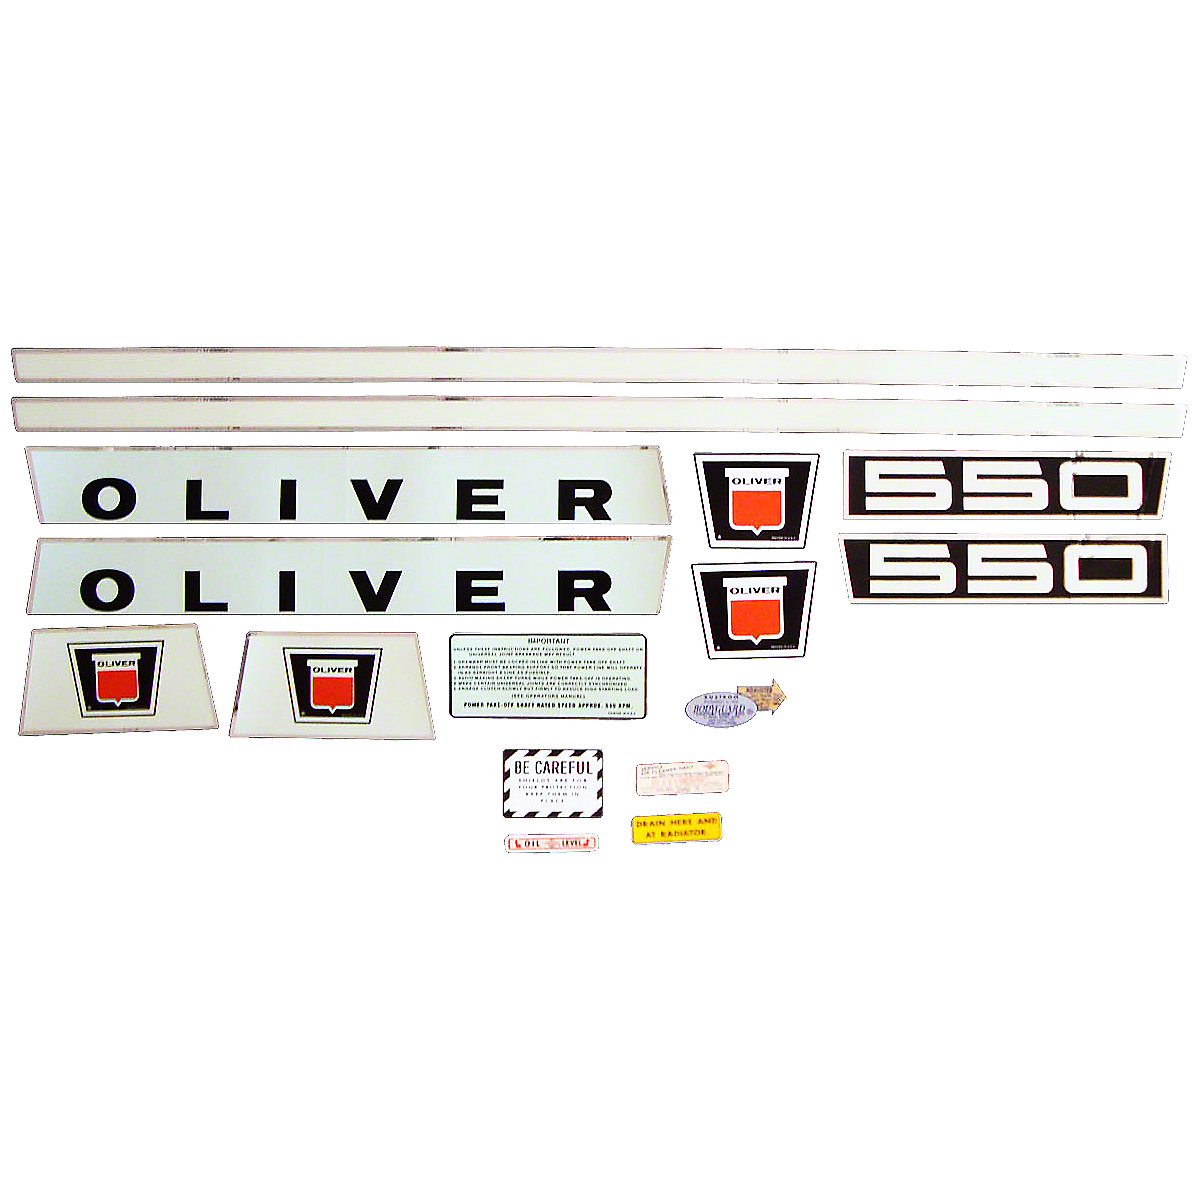 Decal Set For Oliver 550.